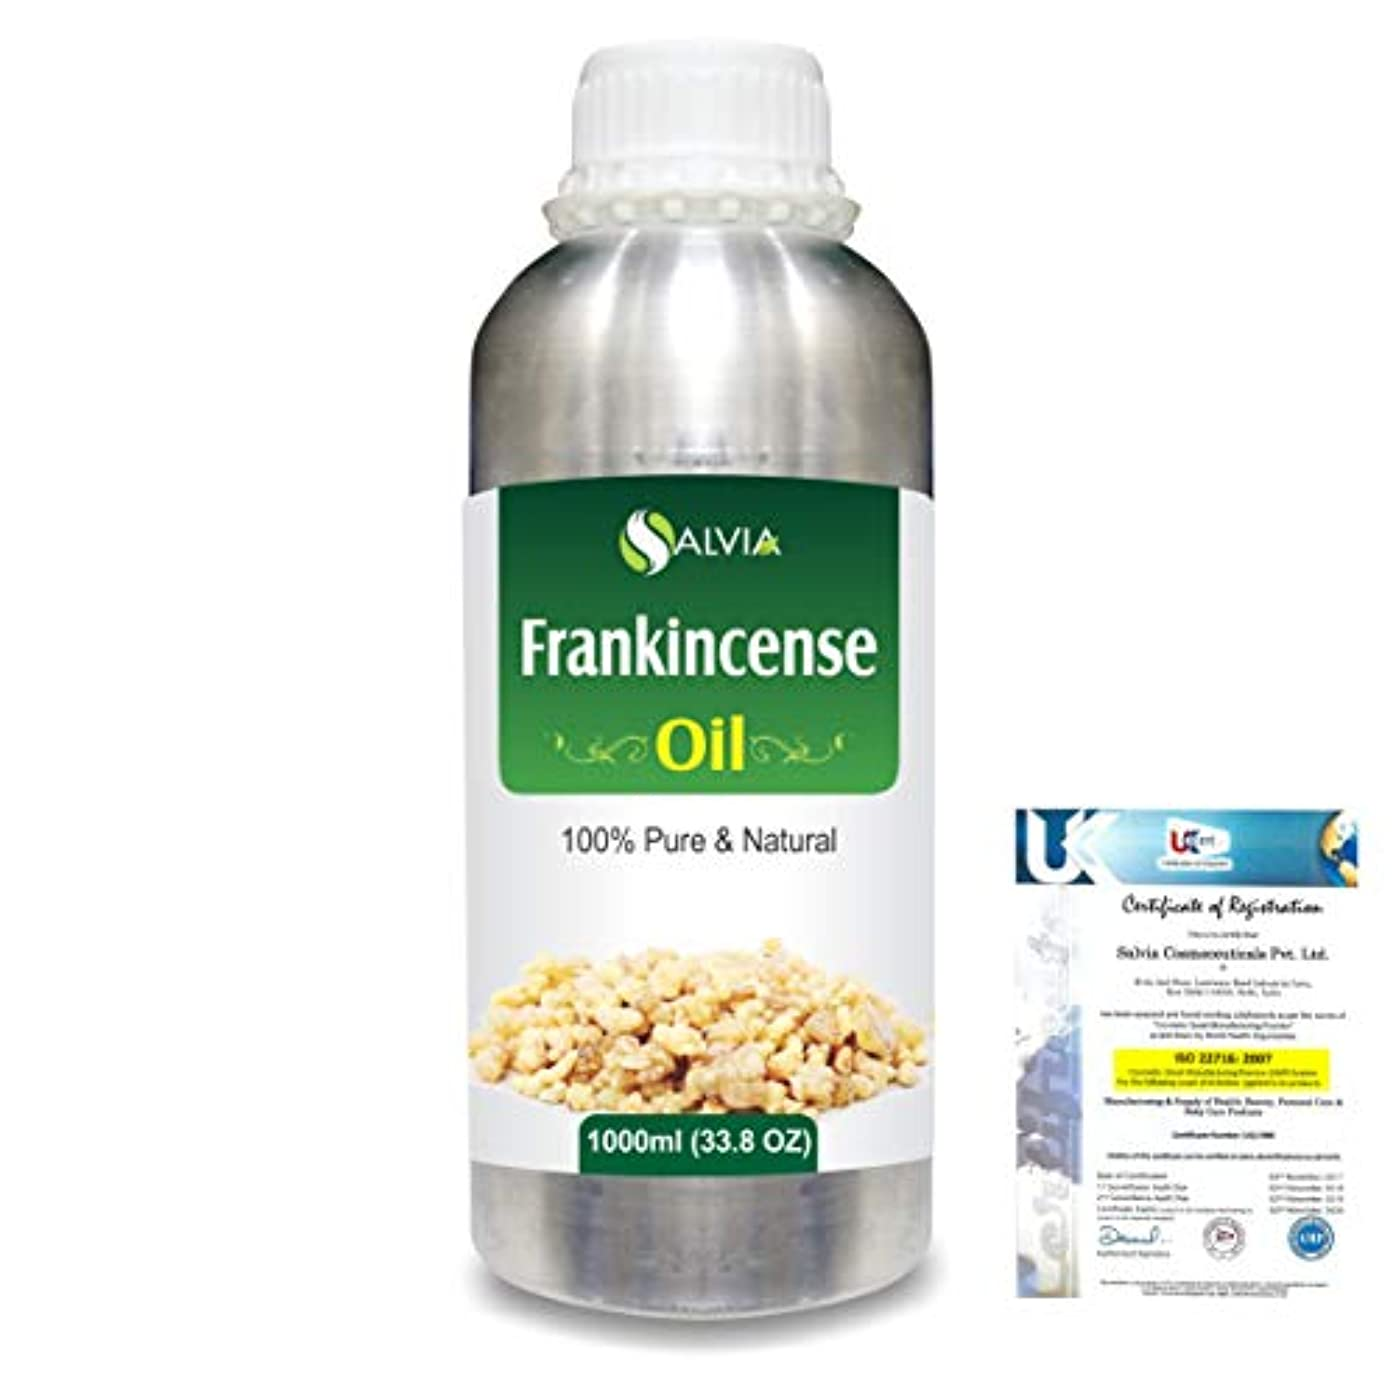 Frankincense (Boswellia carteri) 100% Natural Pure Essential Oil 1000ml/33.8fl.oz.